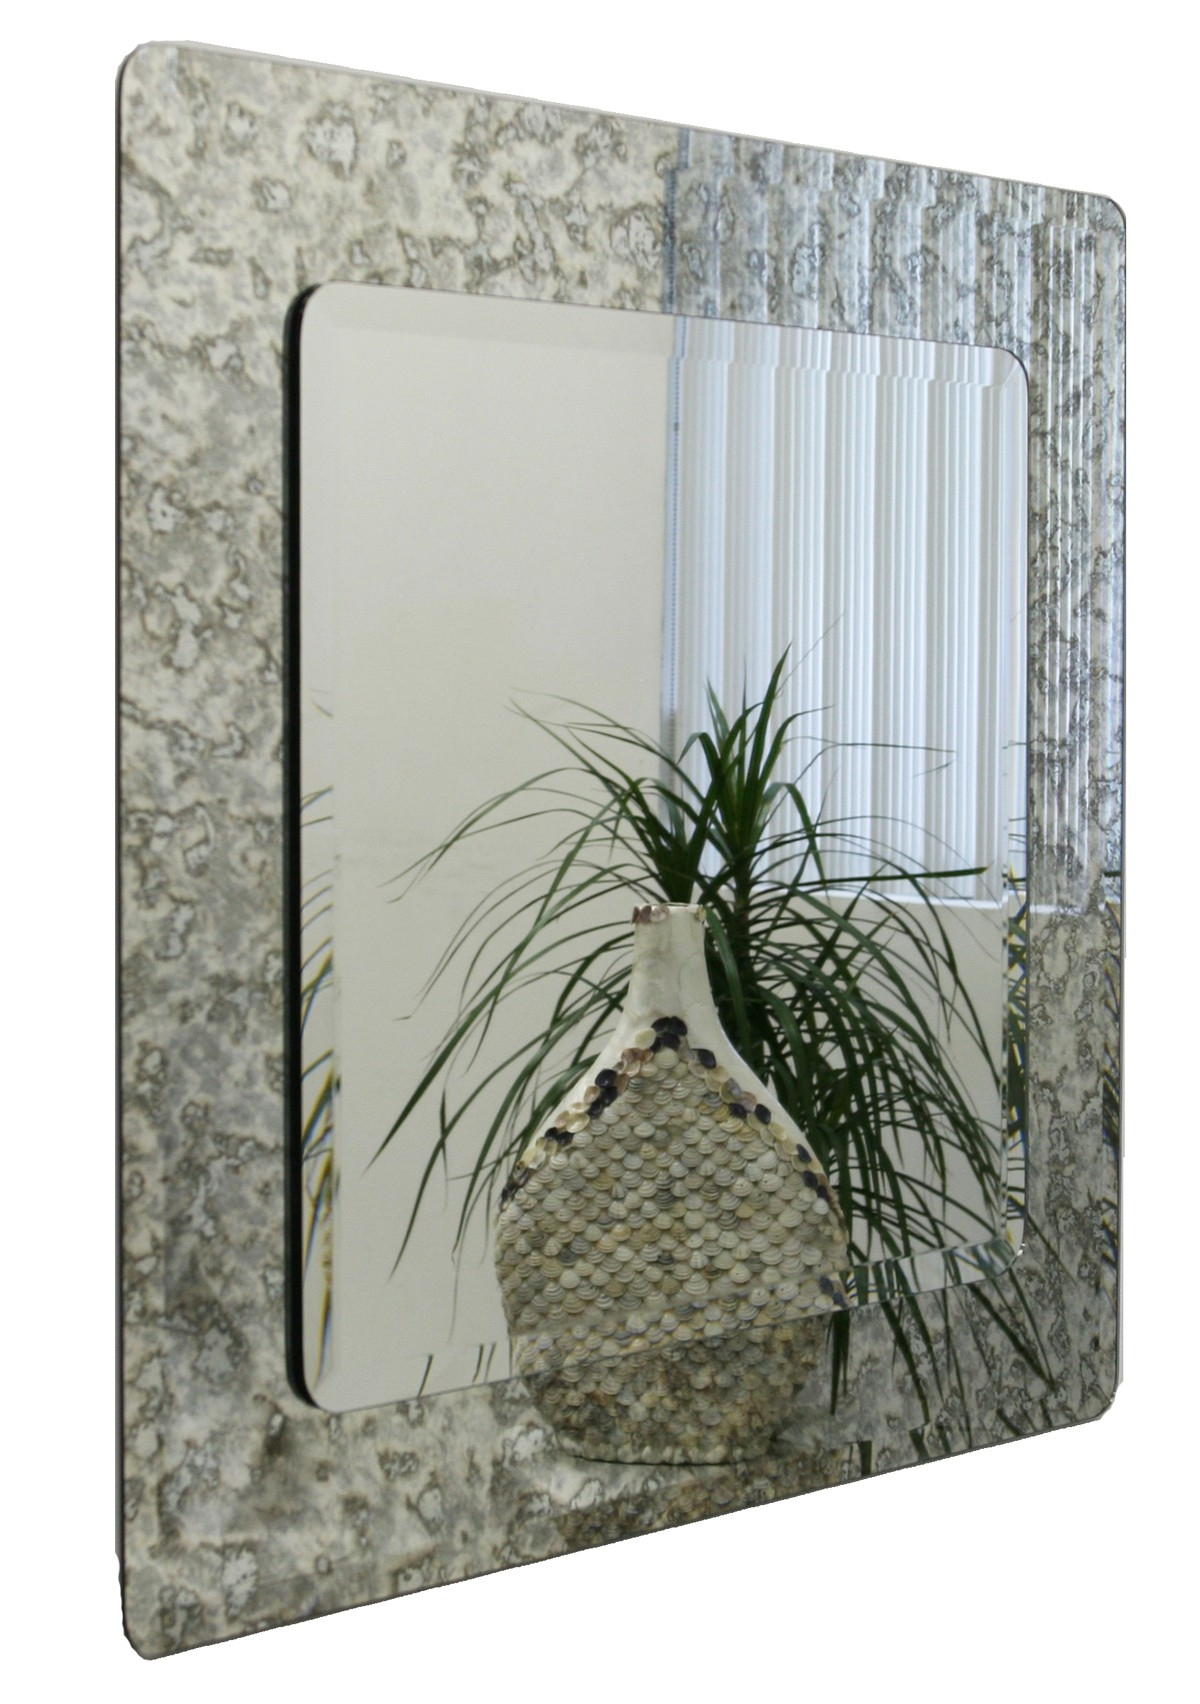 Discount Glass Top Tables Glass Shelves Glass Clearance Center With Regard To Antique Frameless Mirrors (View 5 of 15)